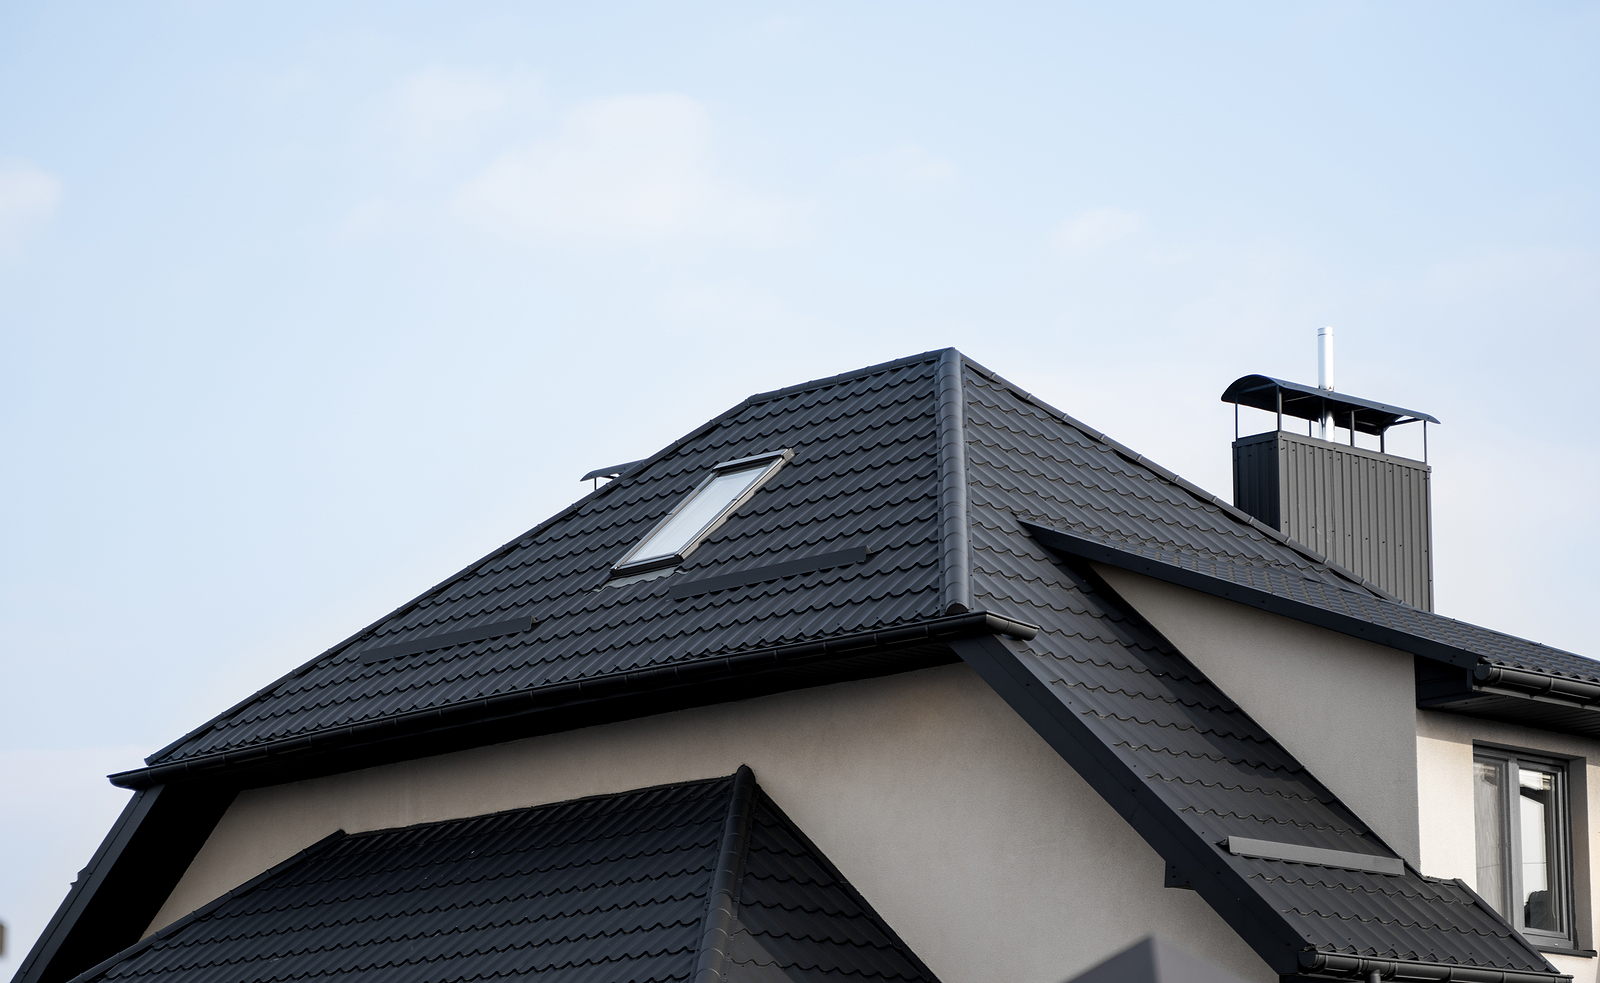 home styles enhanced by a metal roof